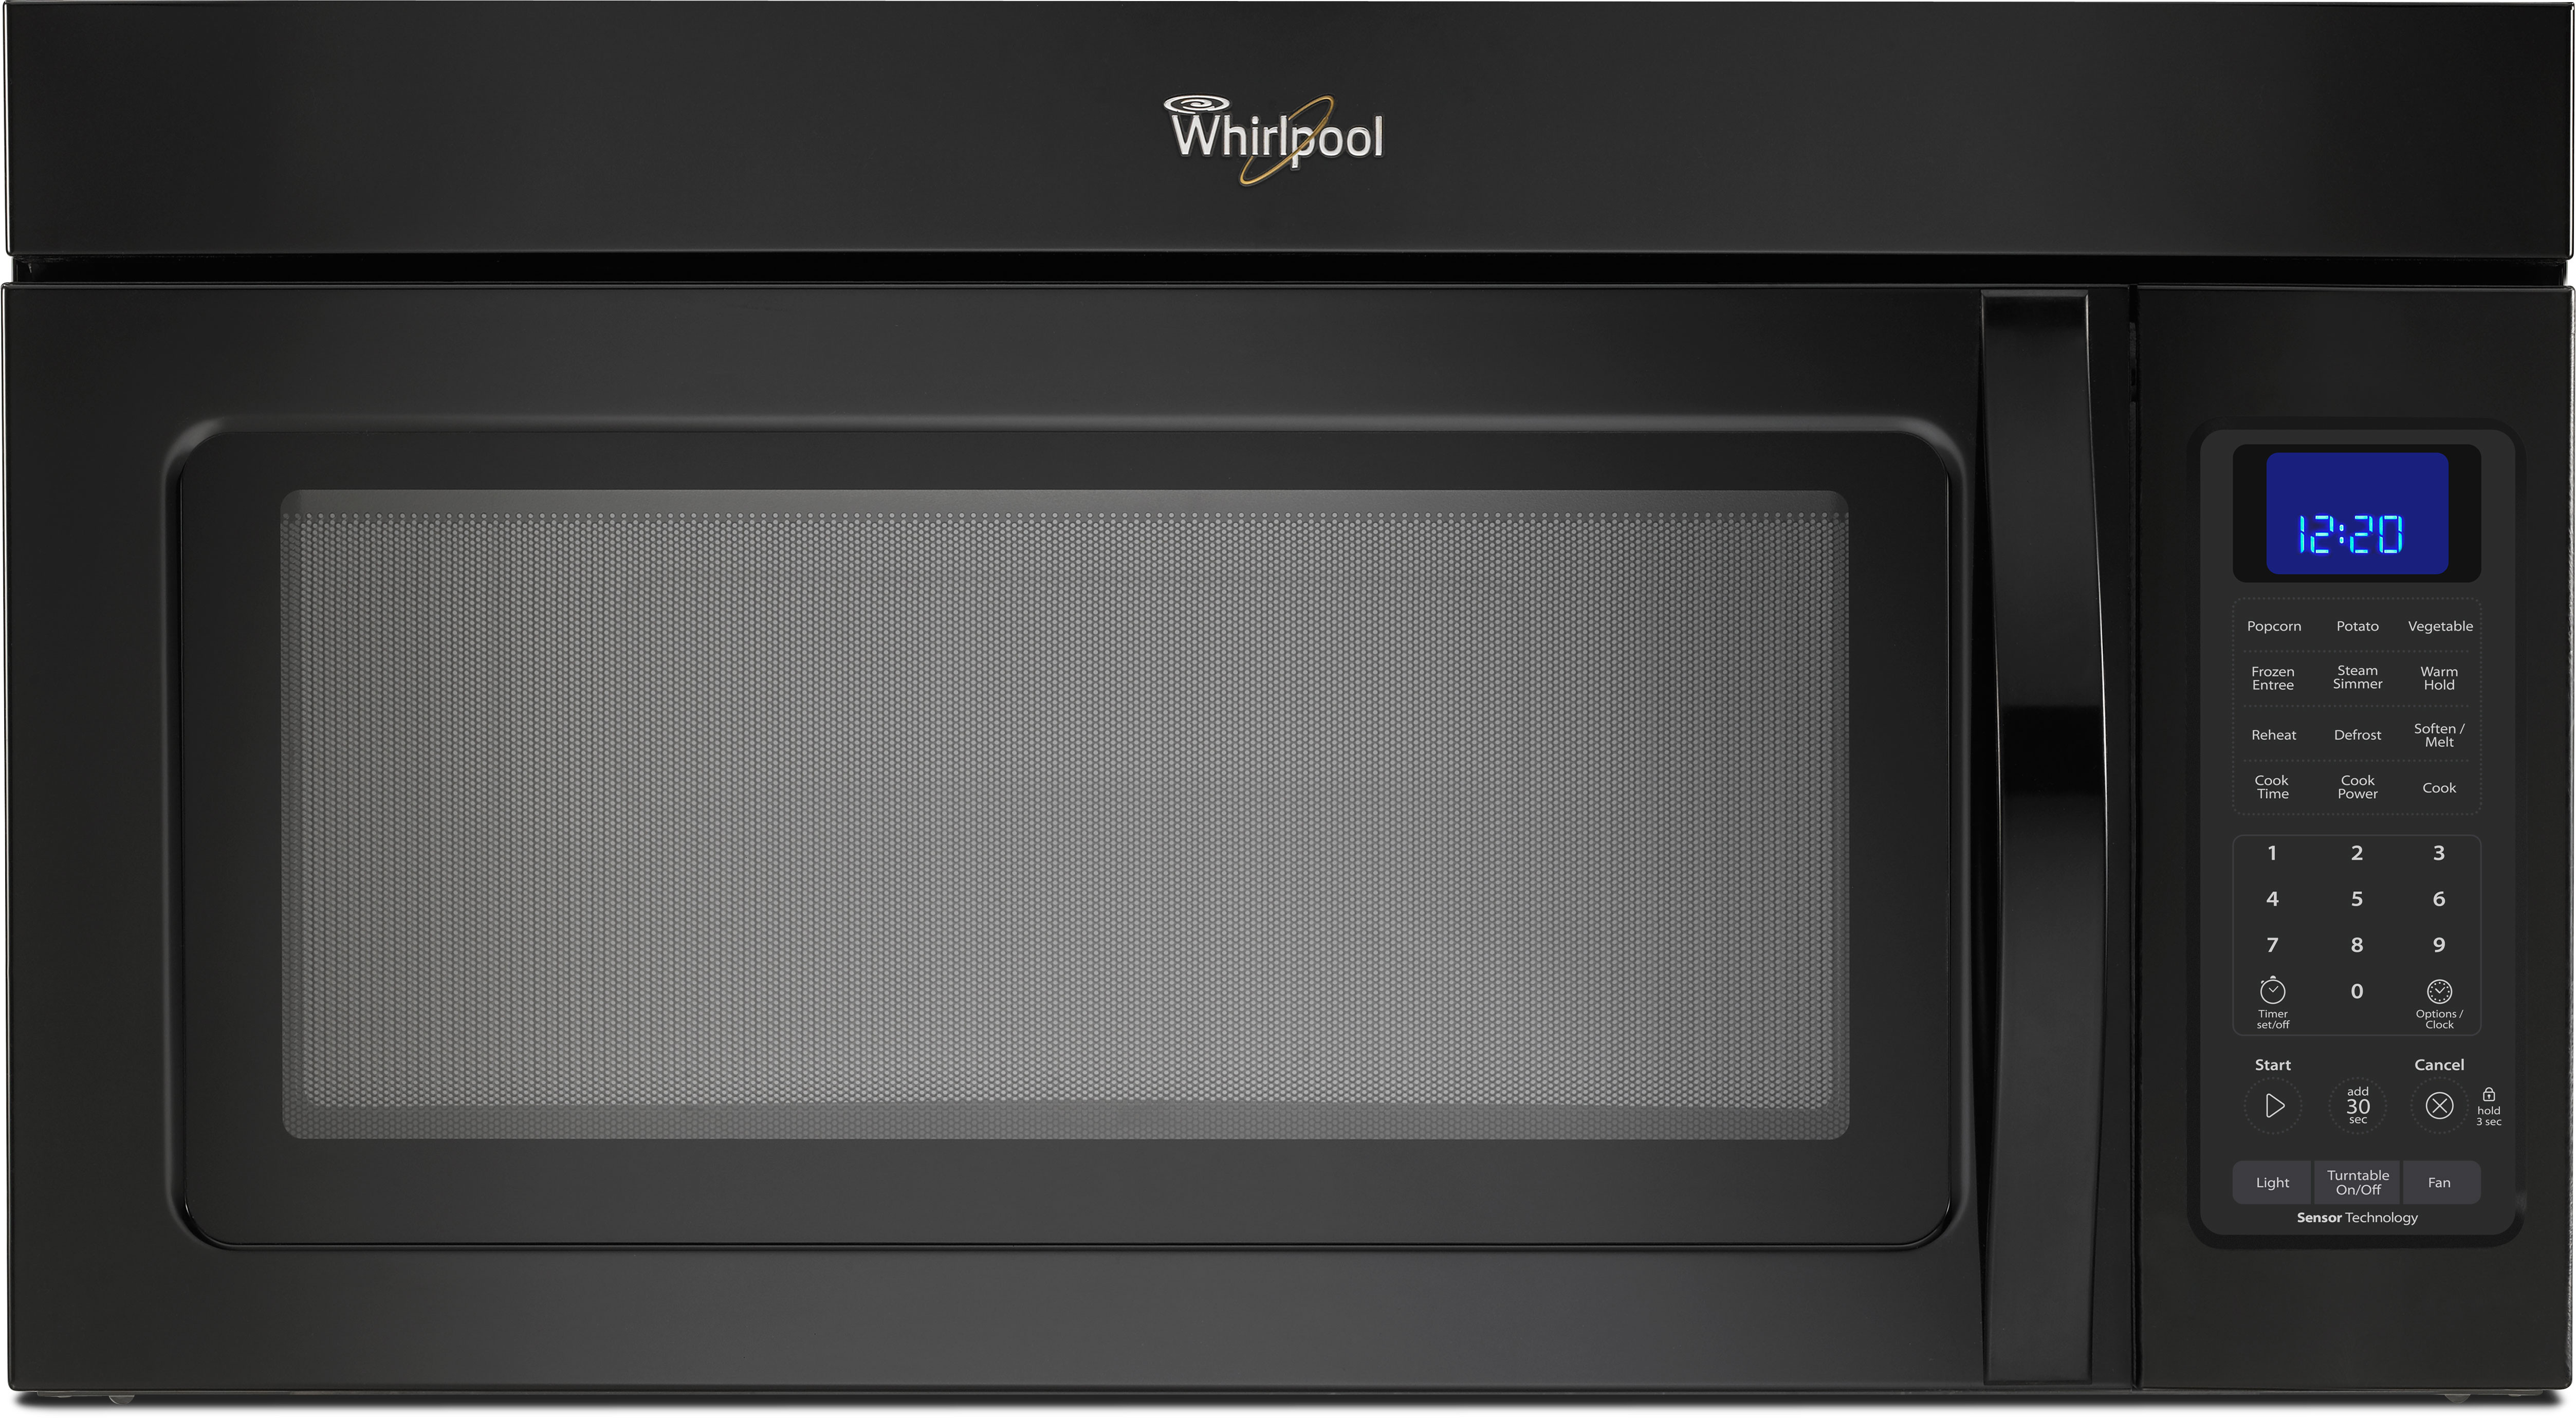 Whirlpool Wmh32519cb 1 9 Cu Ft Over The Range Microwave Oven With 000 Cooking Watts 300 Cfm Venting System Steam Sensor Hidden Vent